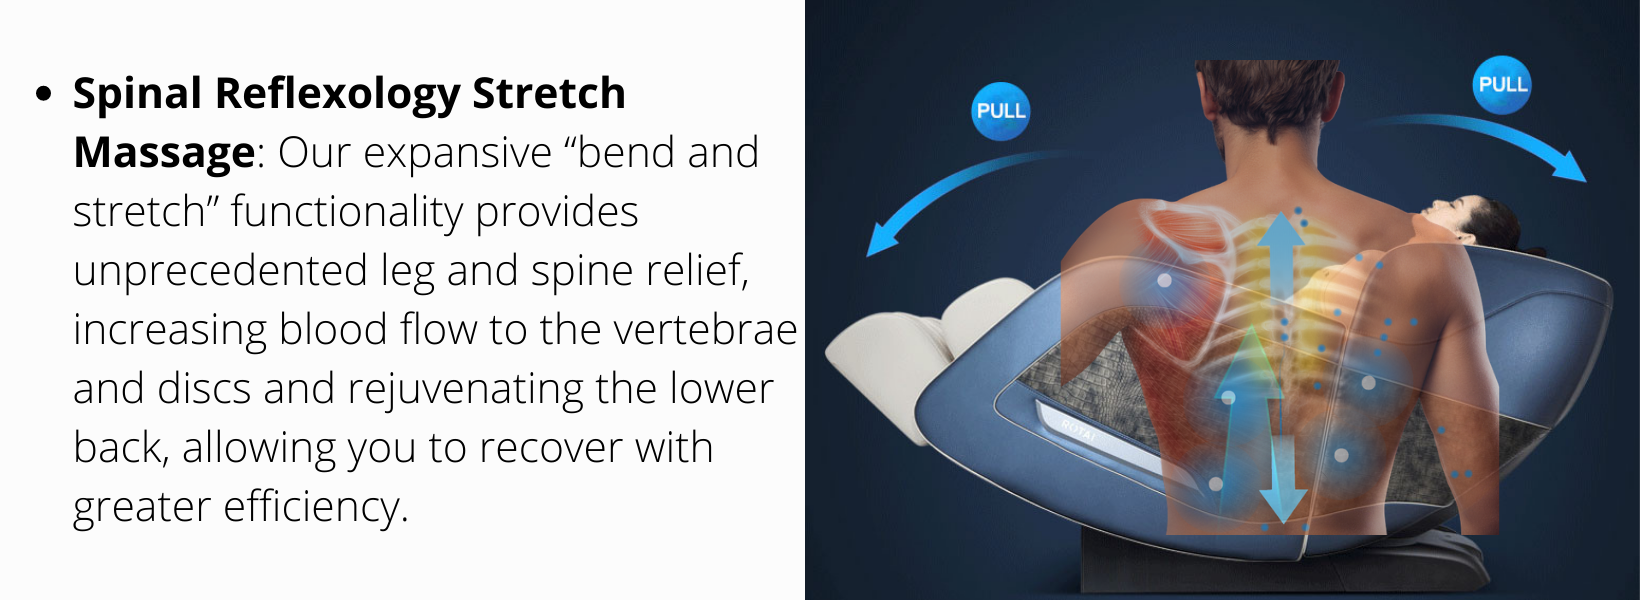 """Spinal Reflexology Stretch Massage: Our expansive """"bend and stretch"""" functionality provides unprecedented leg and spine relief, increasing blood flow to the vertebrae and discs and rejuvenating the lower back, allowing you to recover with greater efficiency."""